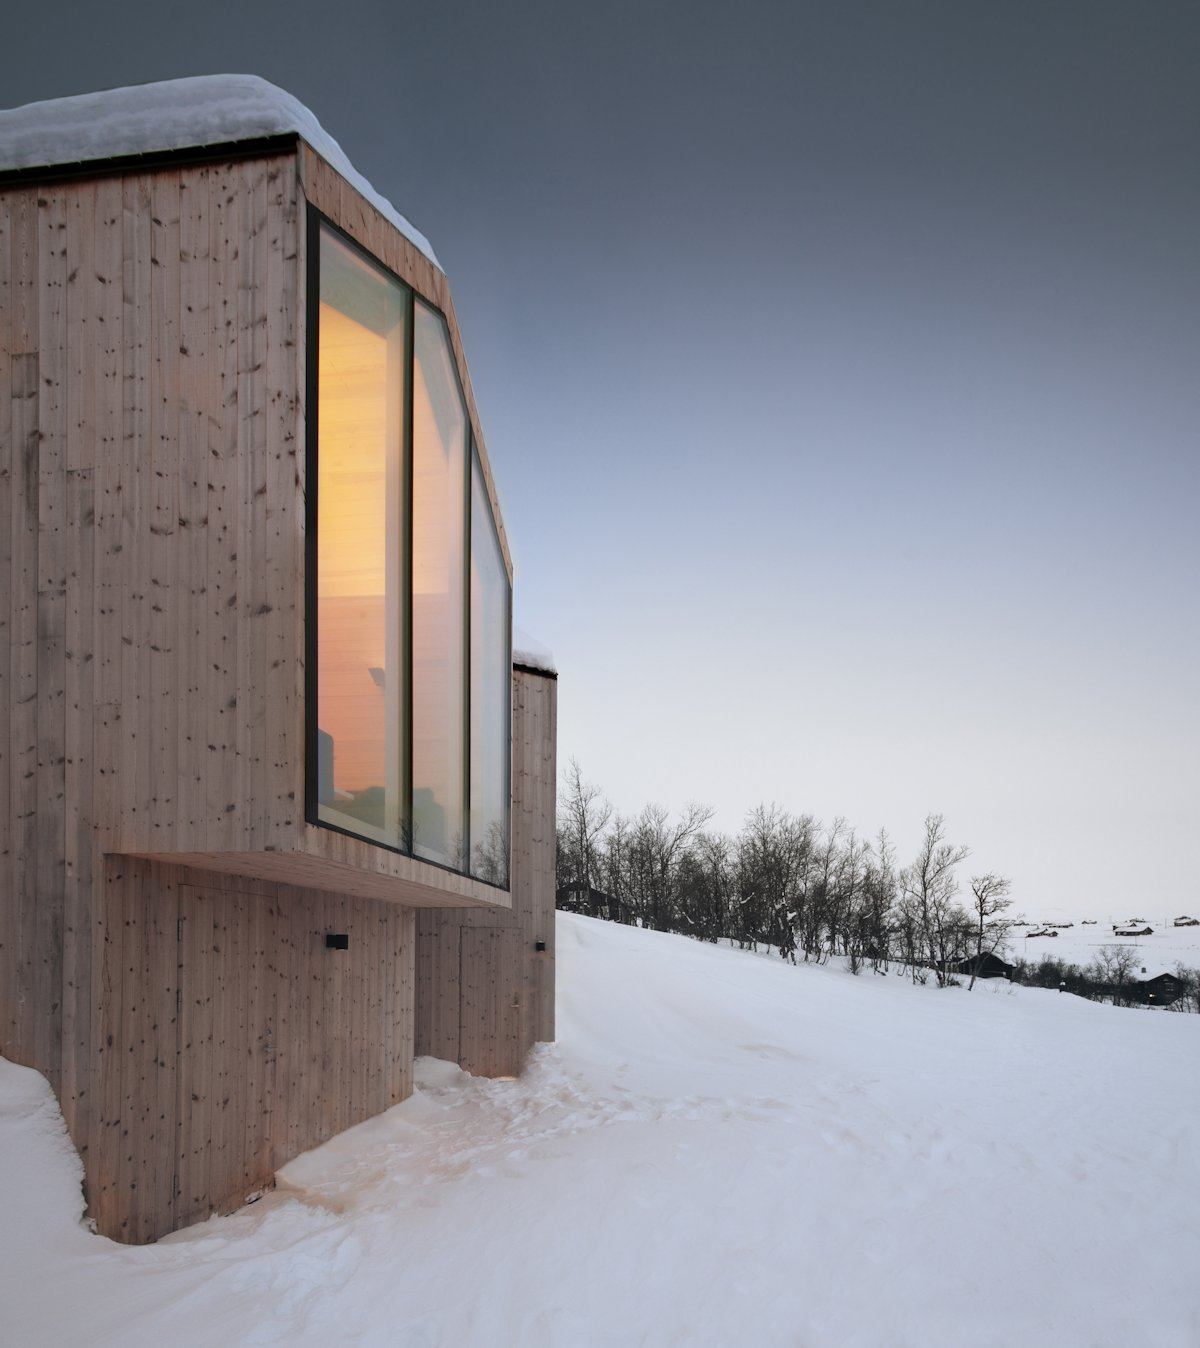 Wood Cladding, Holiday Lodge in Havsdalen, Norway